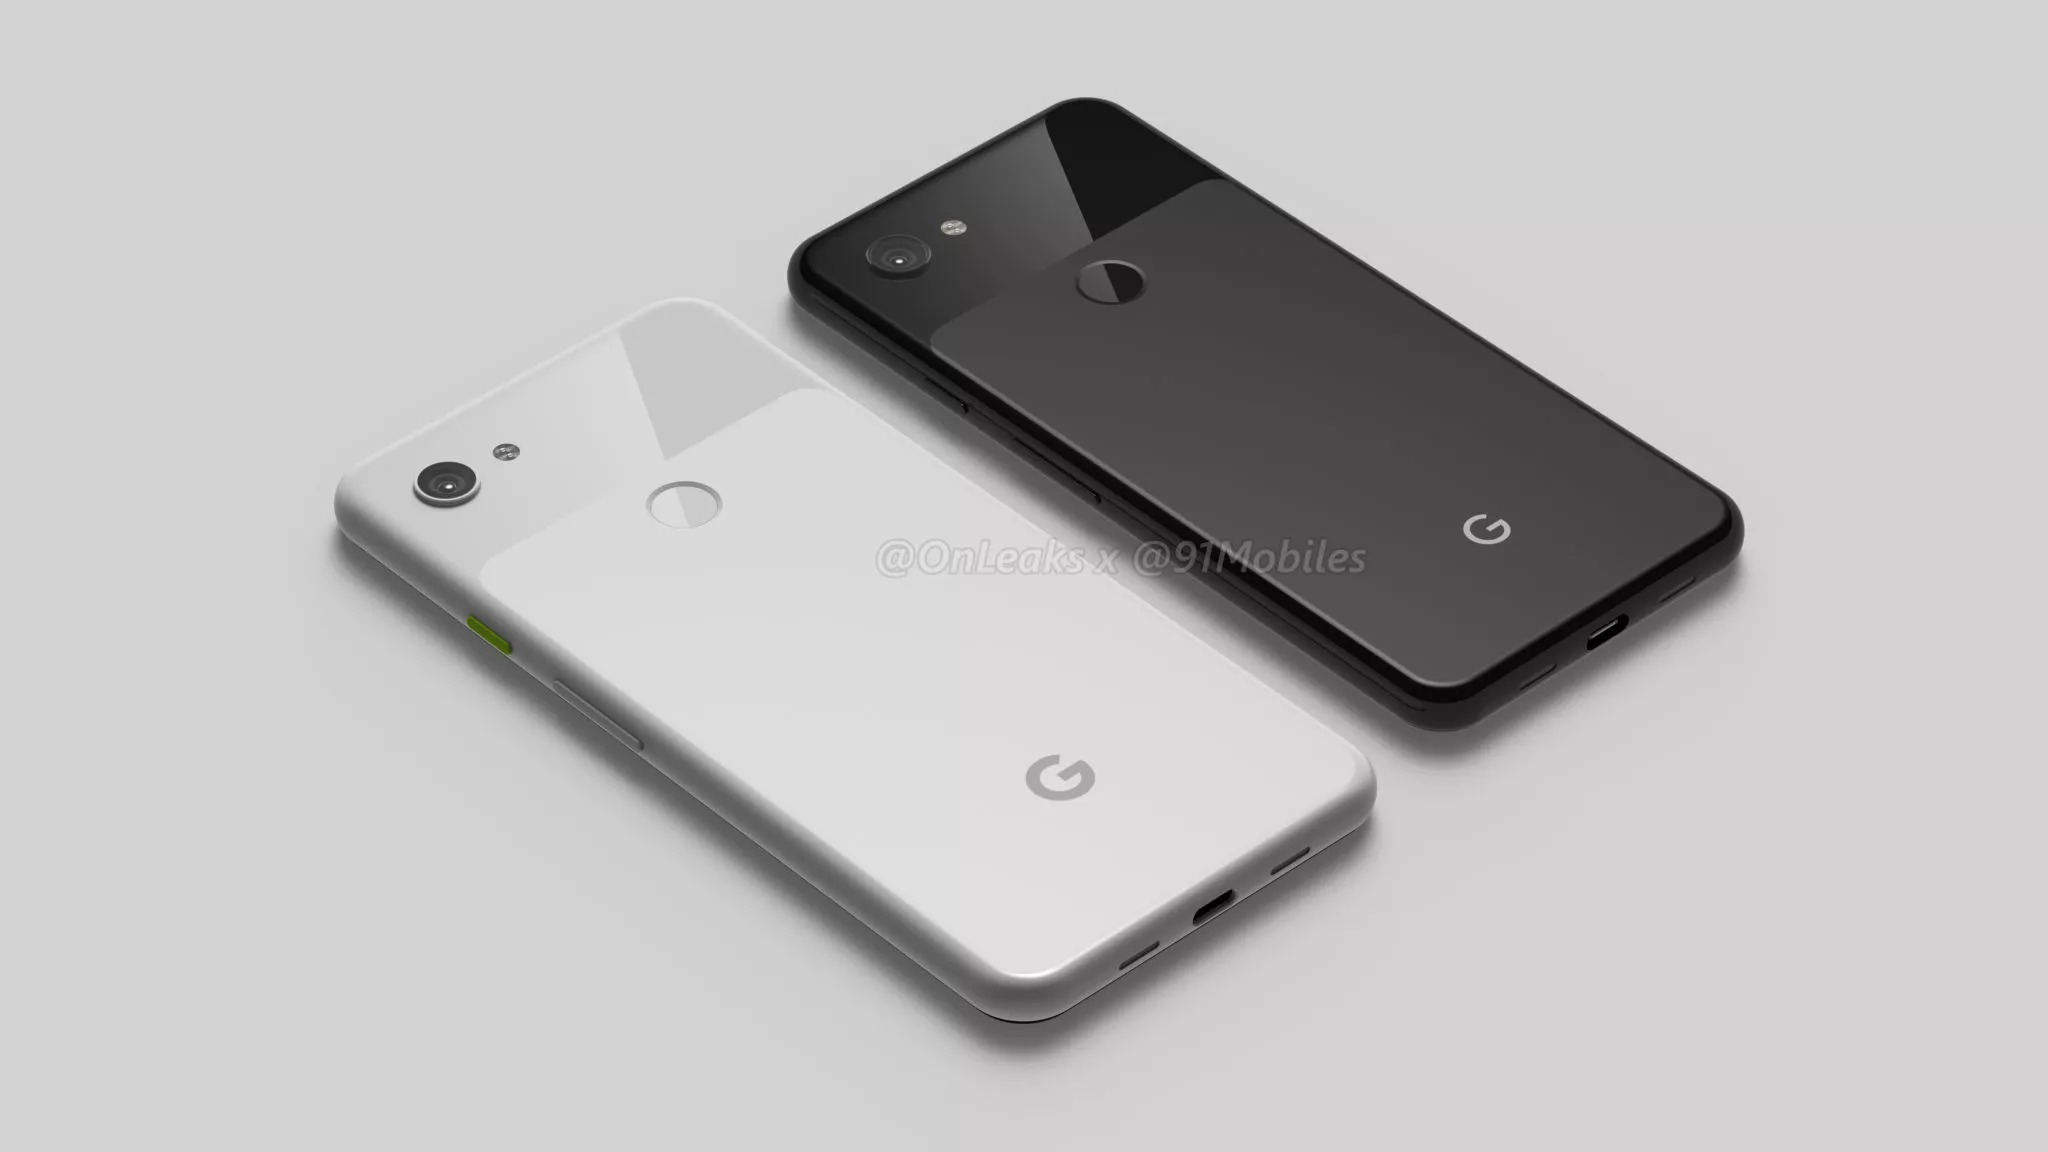 Techmeme: Source: Google's upcoming lower-priced Pixel phones will